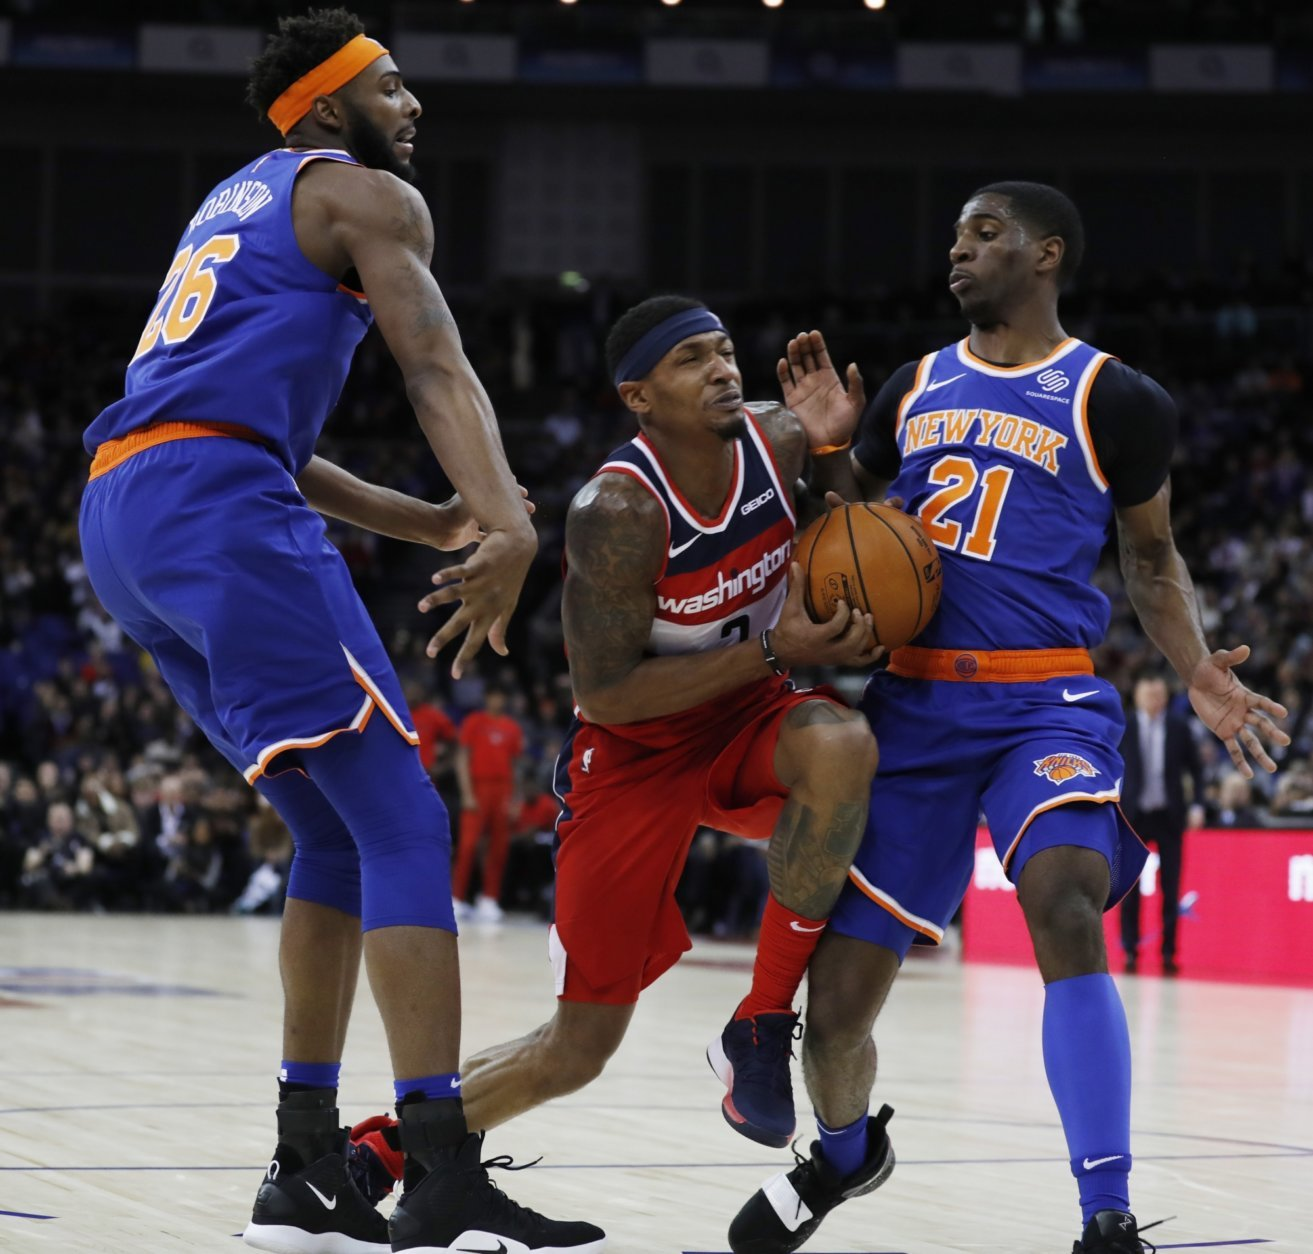 Washington Wizards guard Bradley Beal (3),center, drives to the basket flanked by New York Knicks center Mitchell Robinson (26), left, and his teammate guard Damyean Dotson (21), during an NBA basketball game between New York Knicks and Washington Wizards at the O2 Arena, in London, Thursday, Jan.17, 2019. (AP Photo/Alastair Grant)